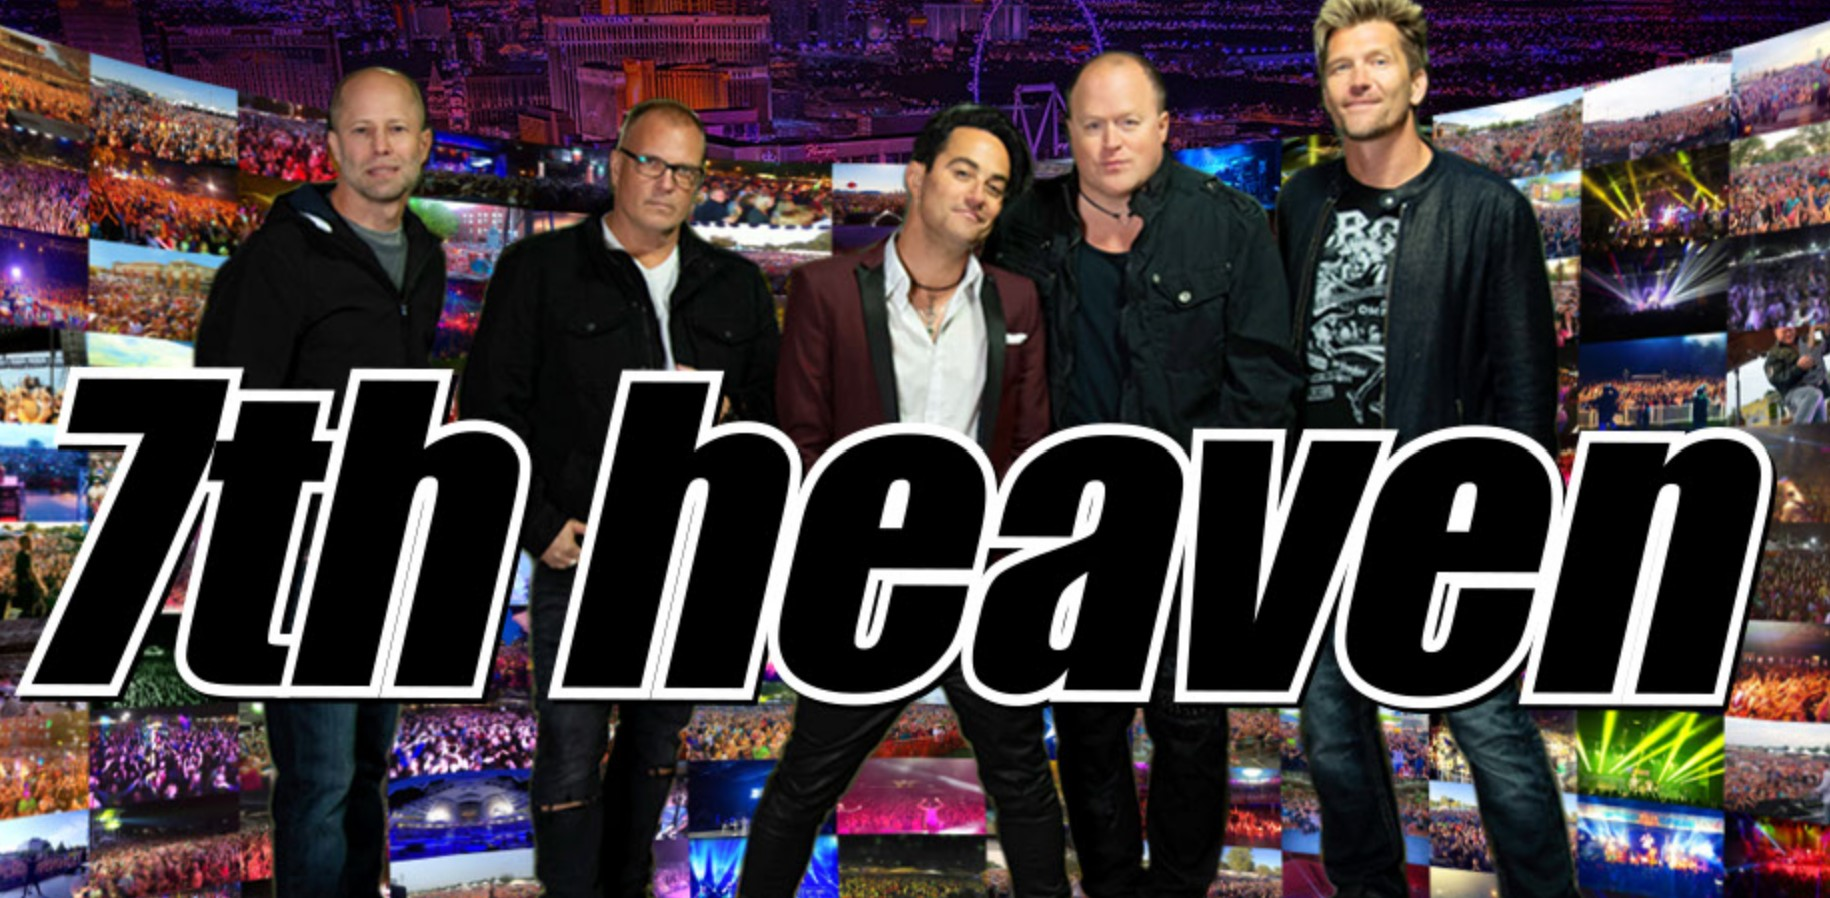 7th heaven band